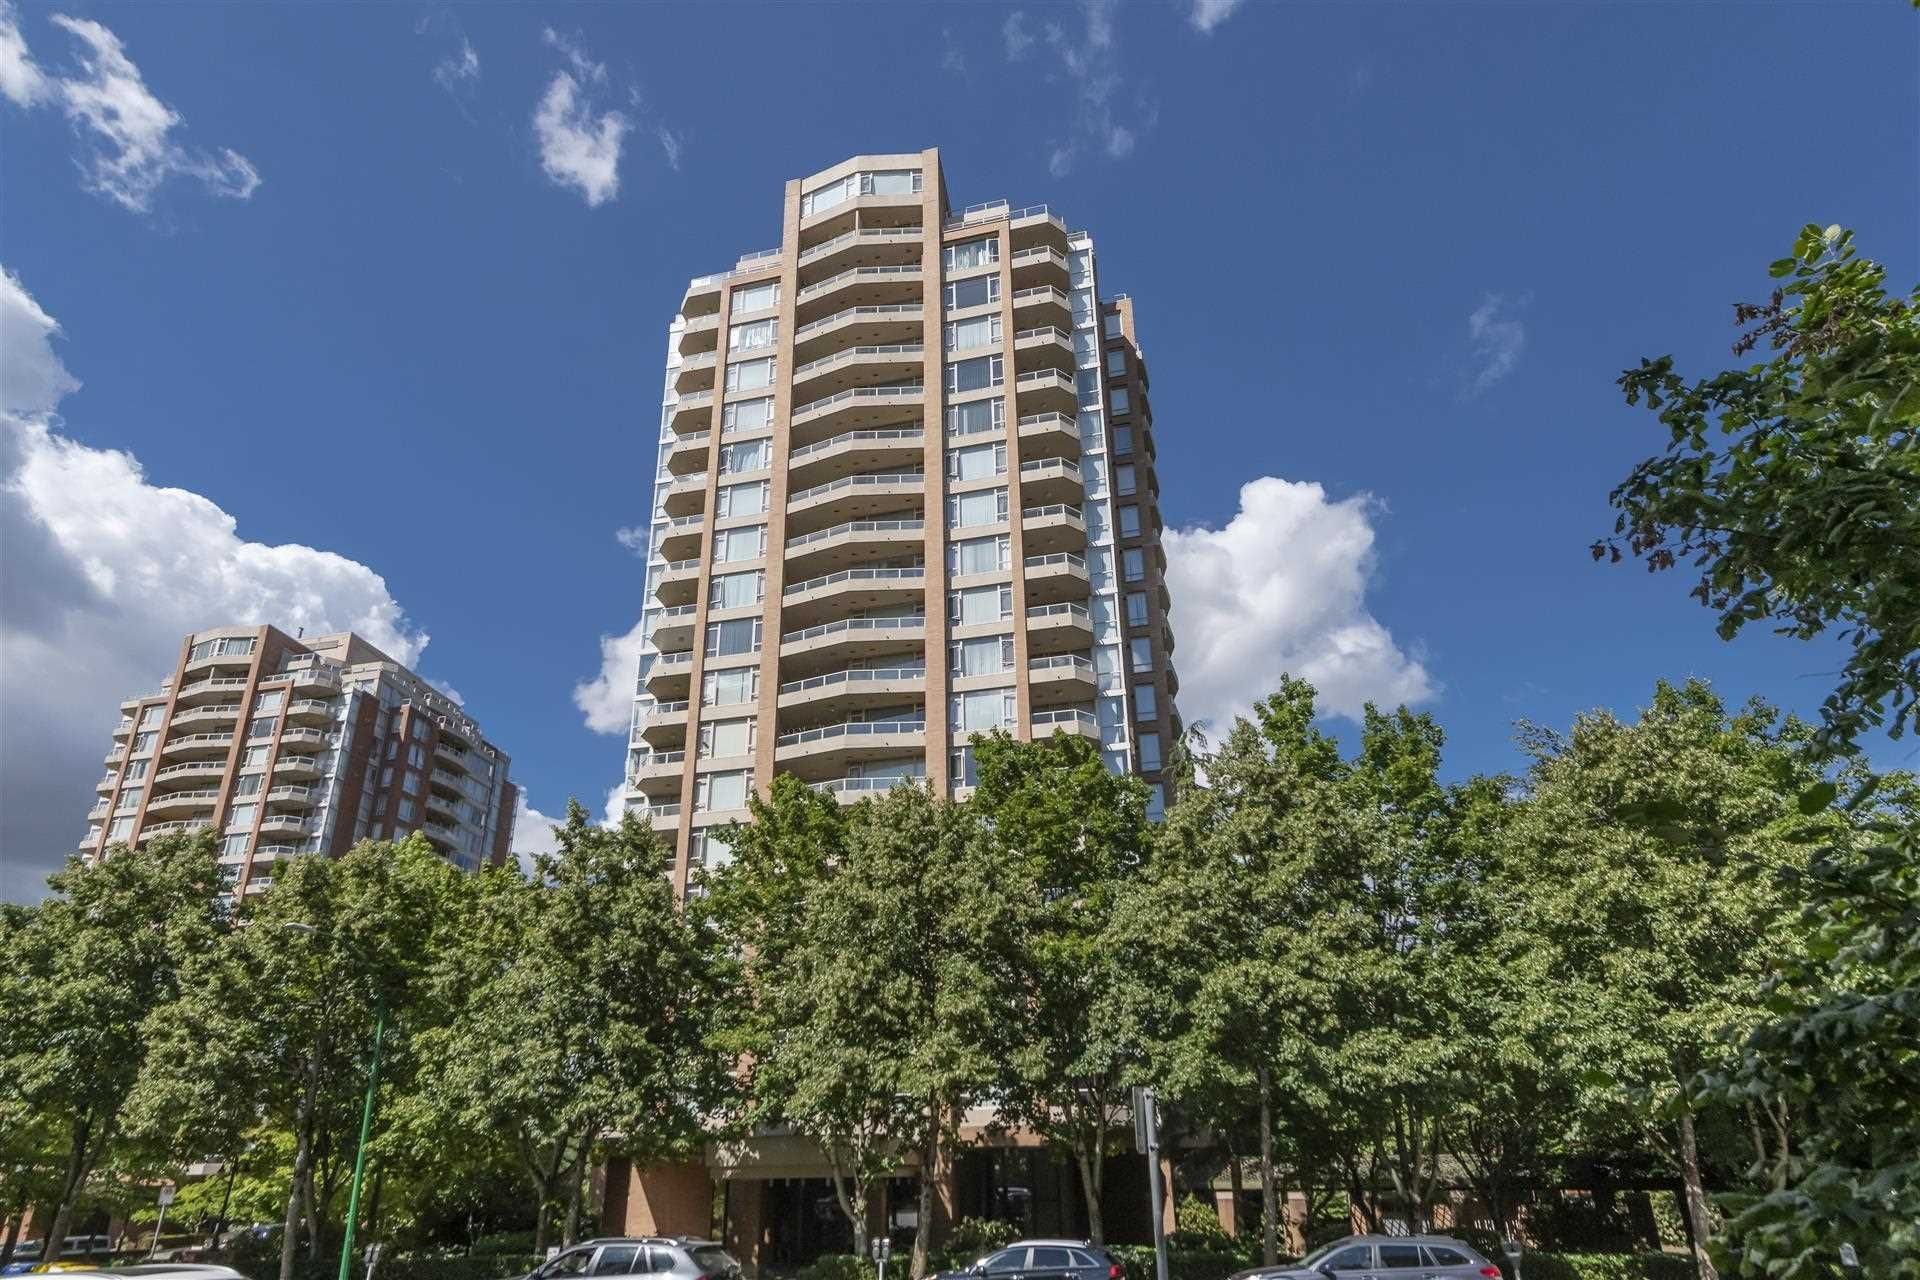 Main Photo: 204 4689 HAZEL Street in Burnaby: Forest Glen BS Condo for sale (Burnaby South)  : MLS®# R2604209